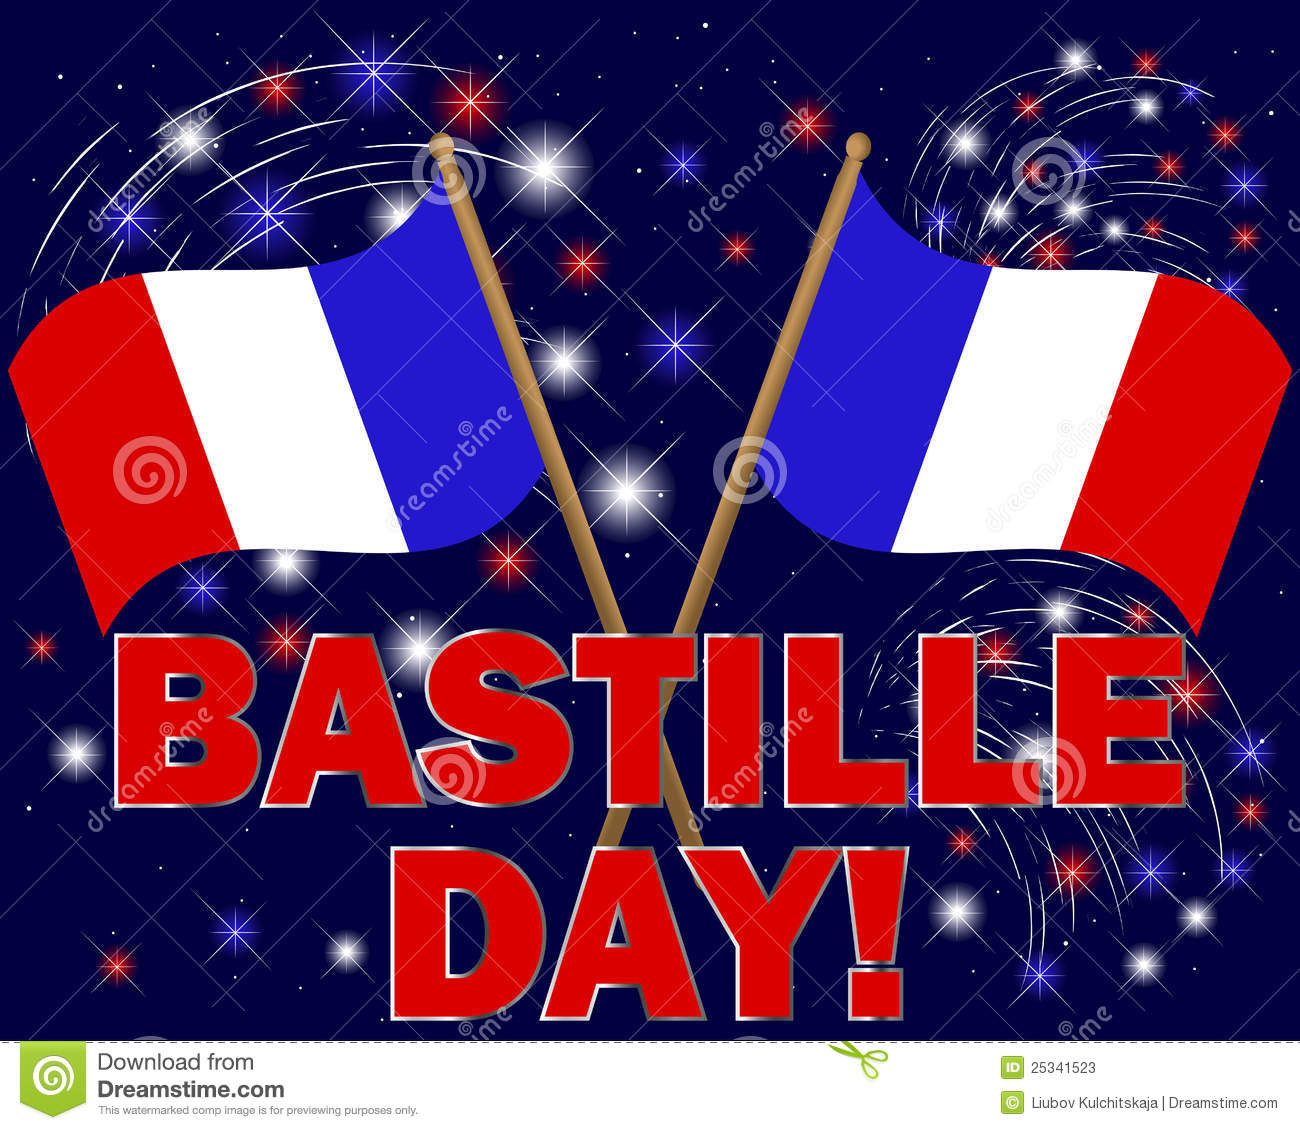 bastille day background stock vector illustration of election day 2017 clipart election day clip art free